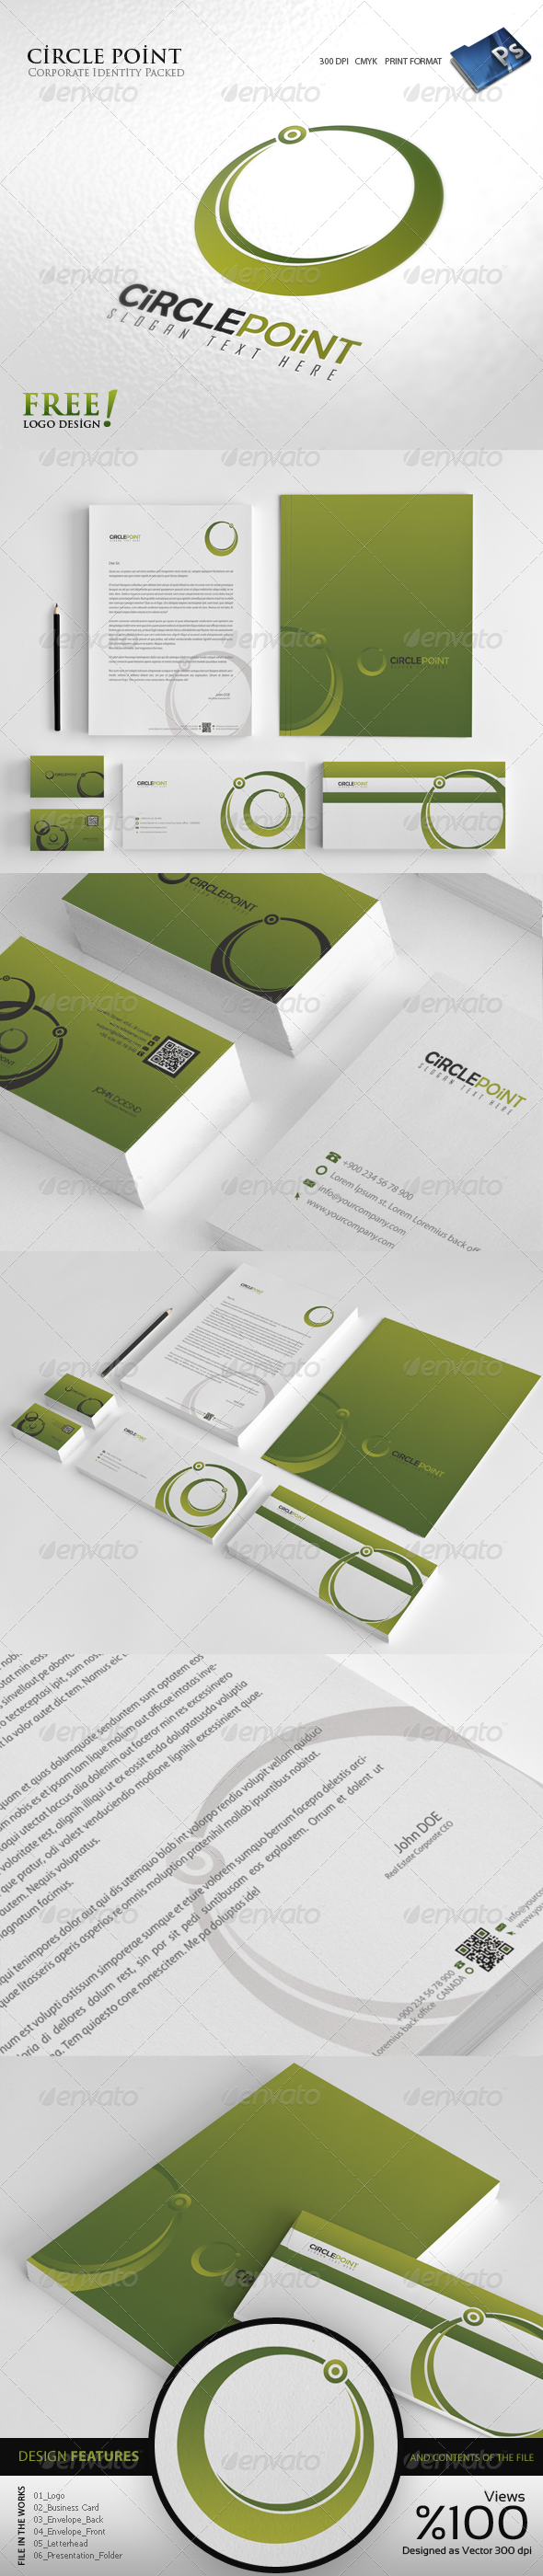 GraphicRiver Circle Point Corporate identity 4117018